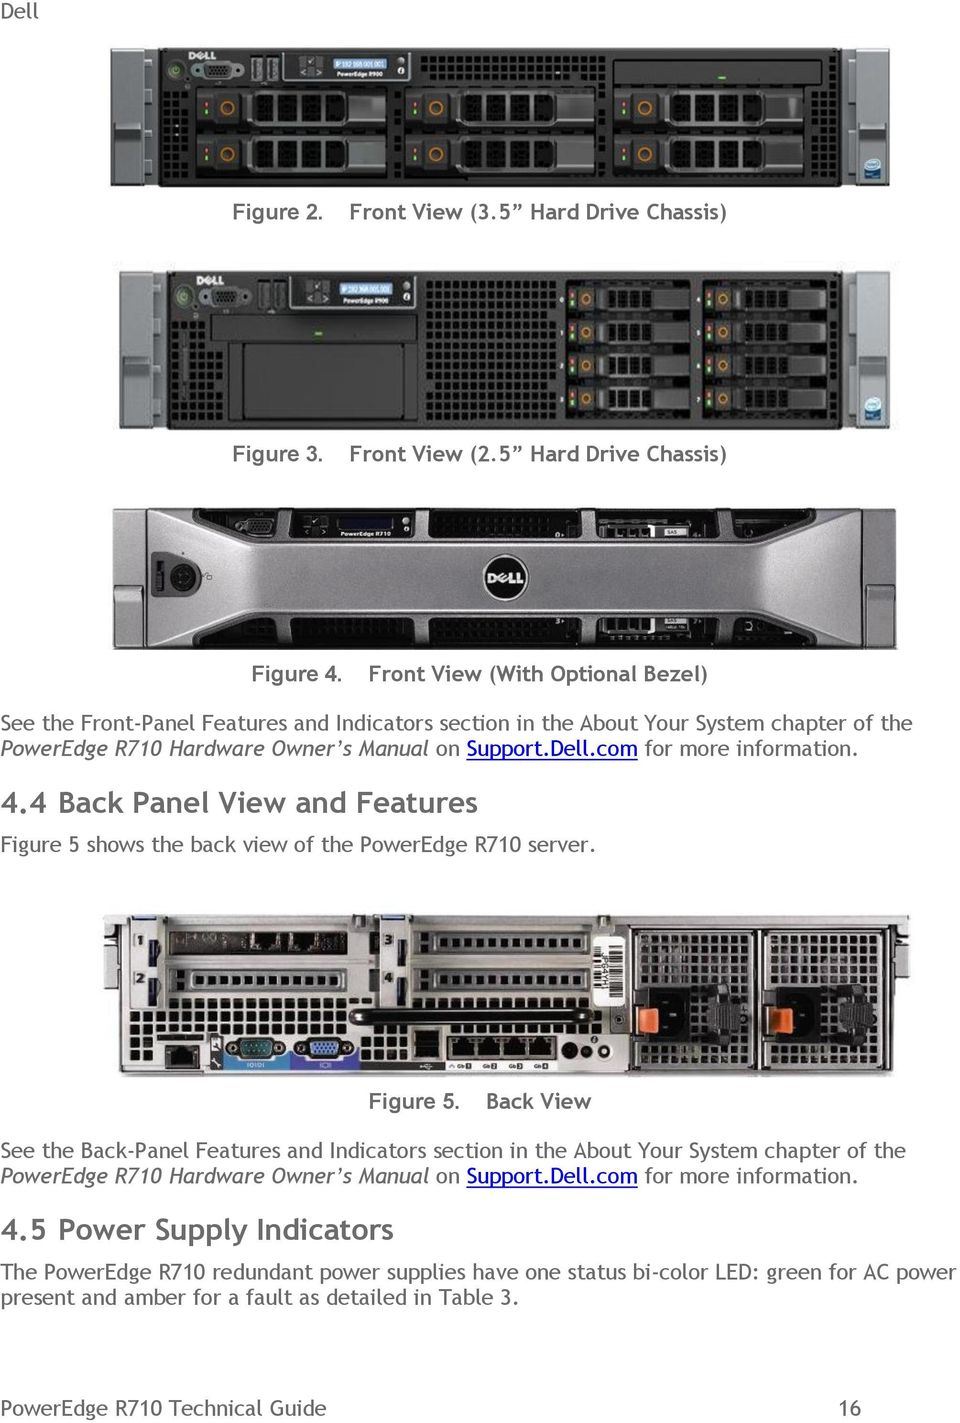 PowerEdge R710  Technical Guide - PDF